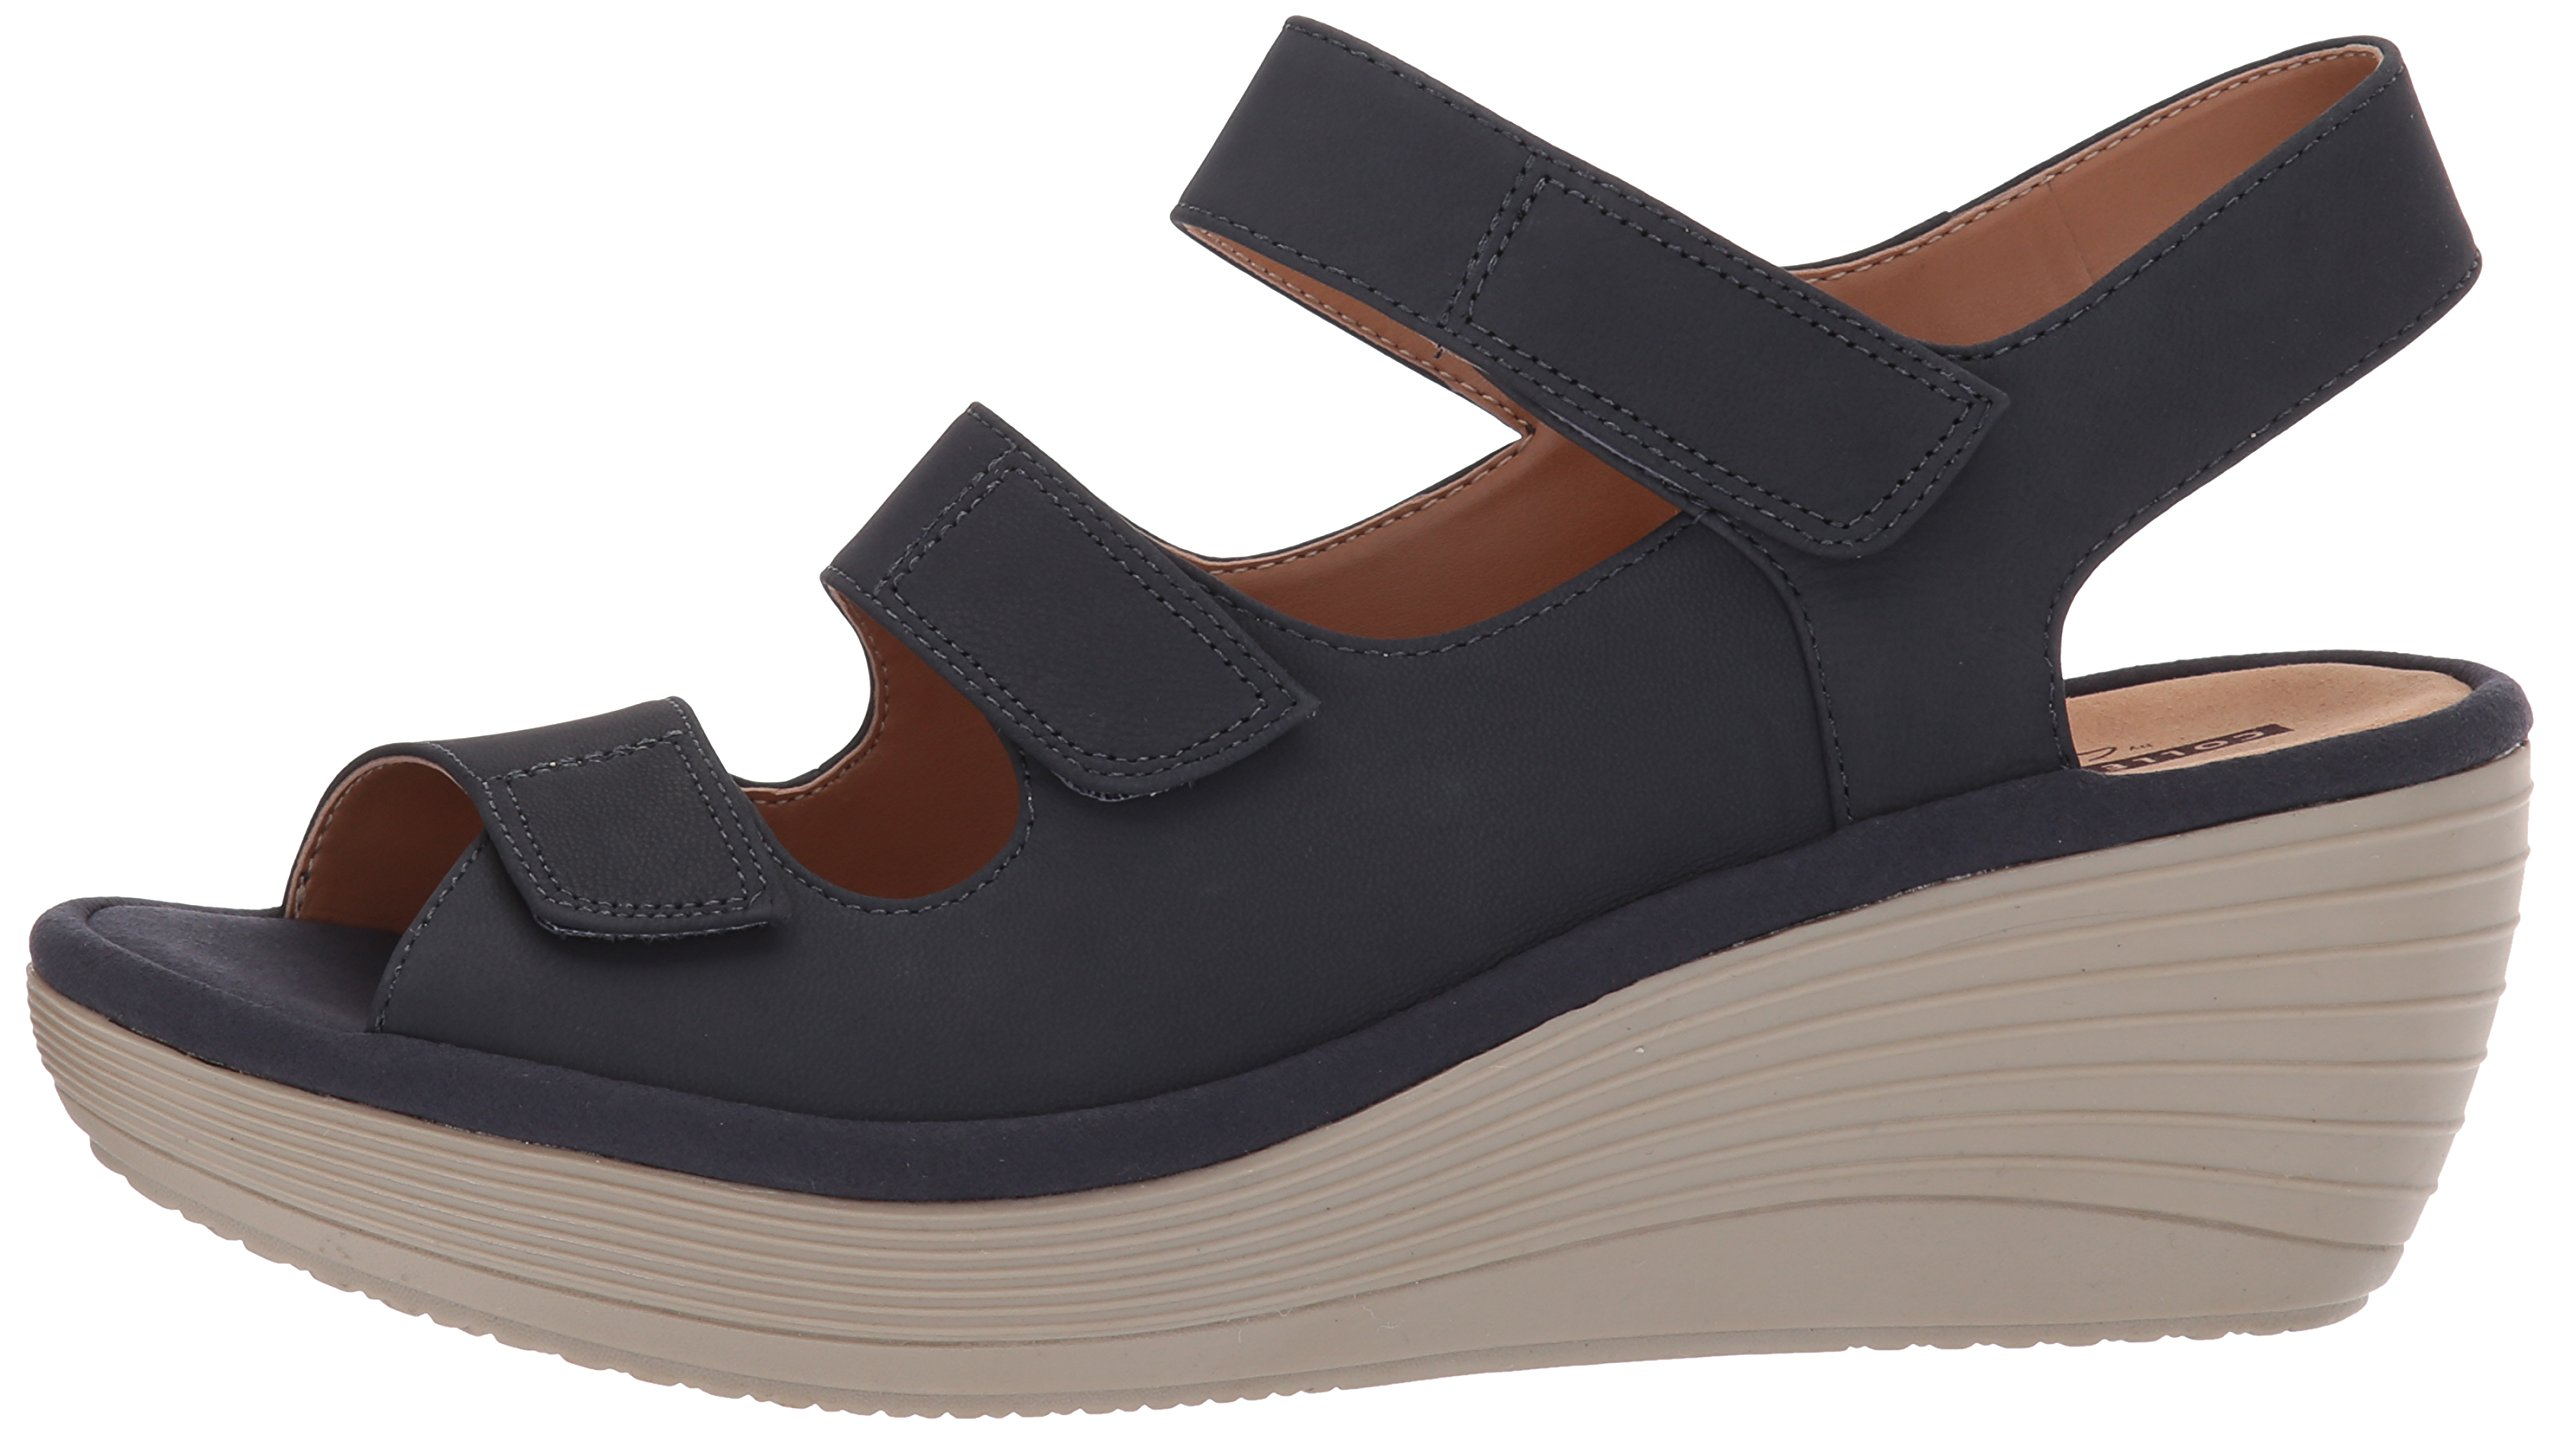 6d00746e25a1 CLARKS Women s Reedly Juno Wedge Sandal